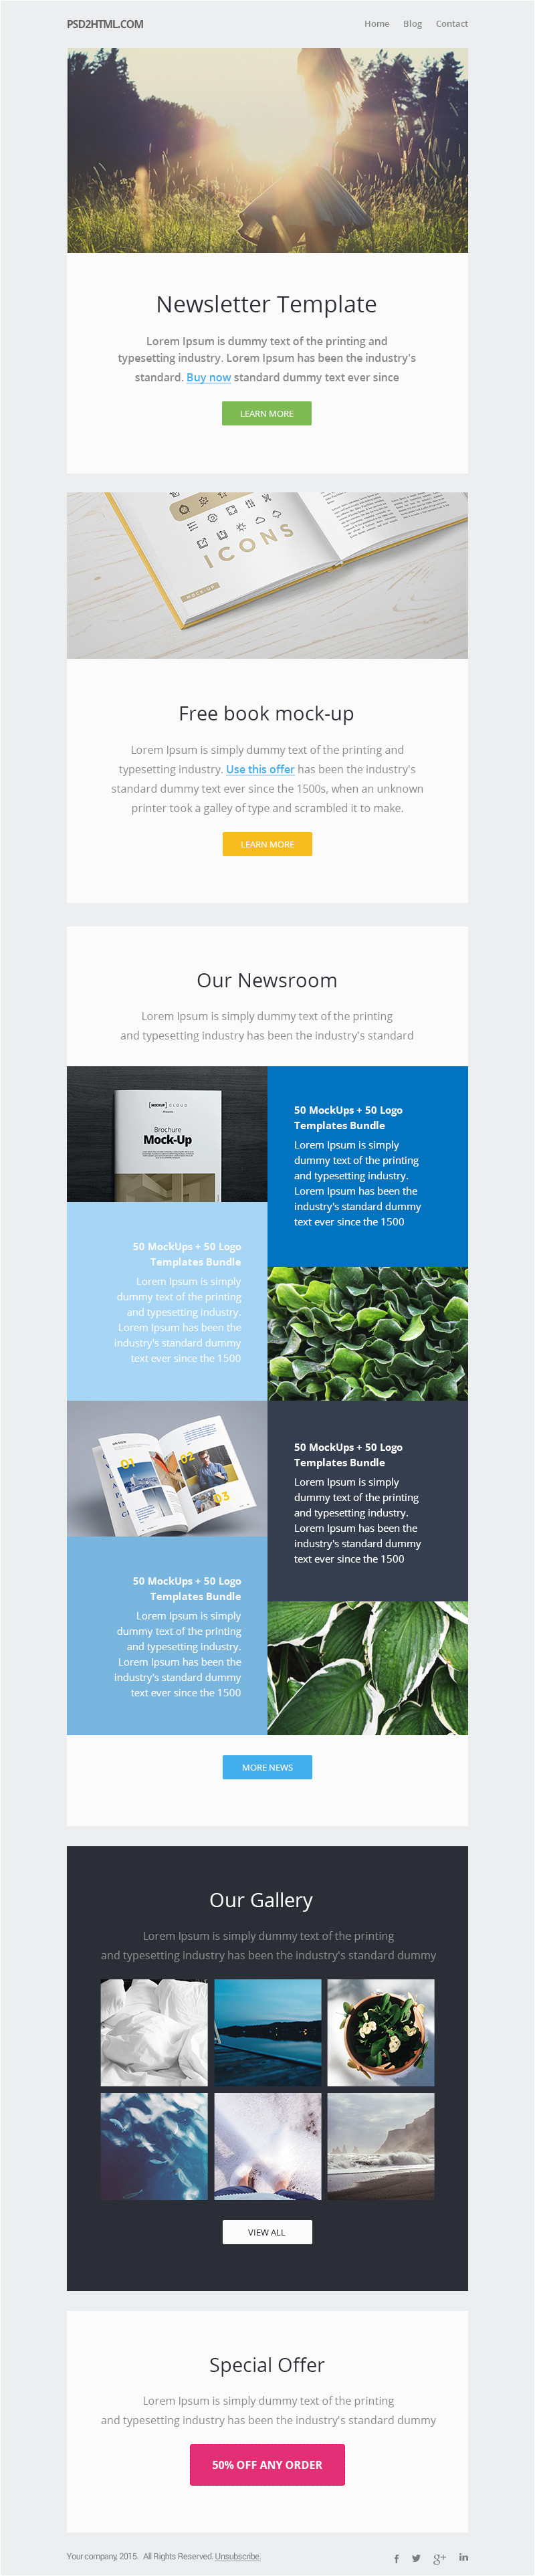 free newsletter template psd html